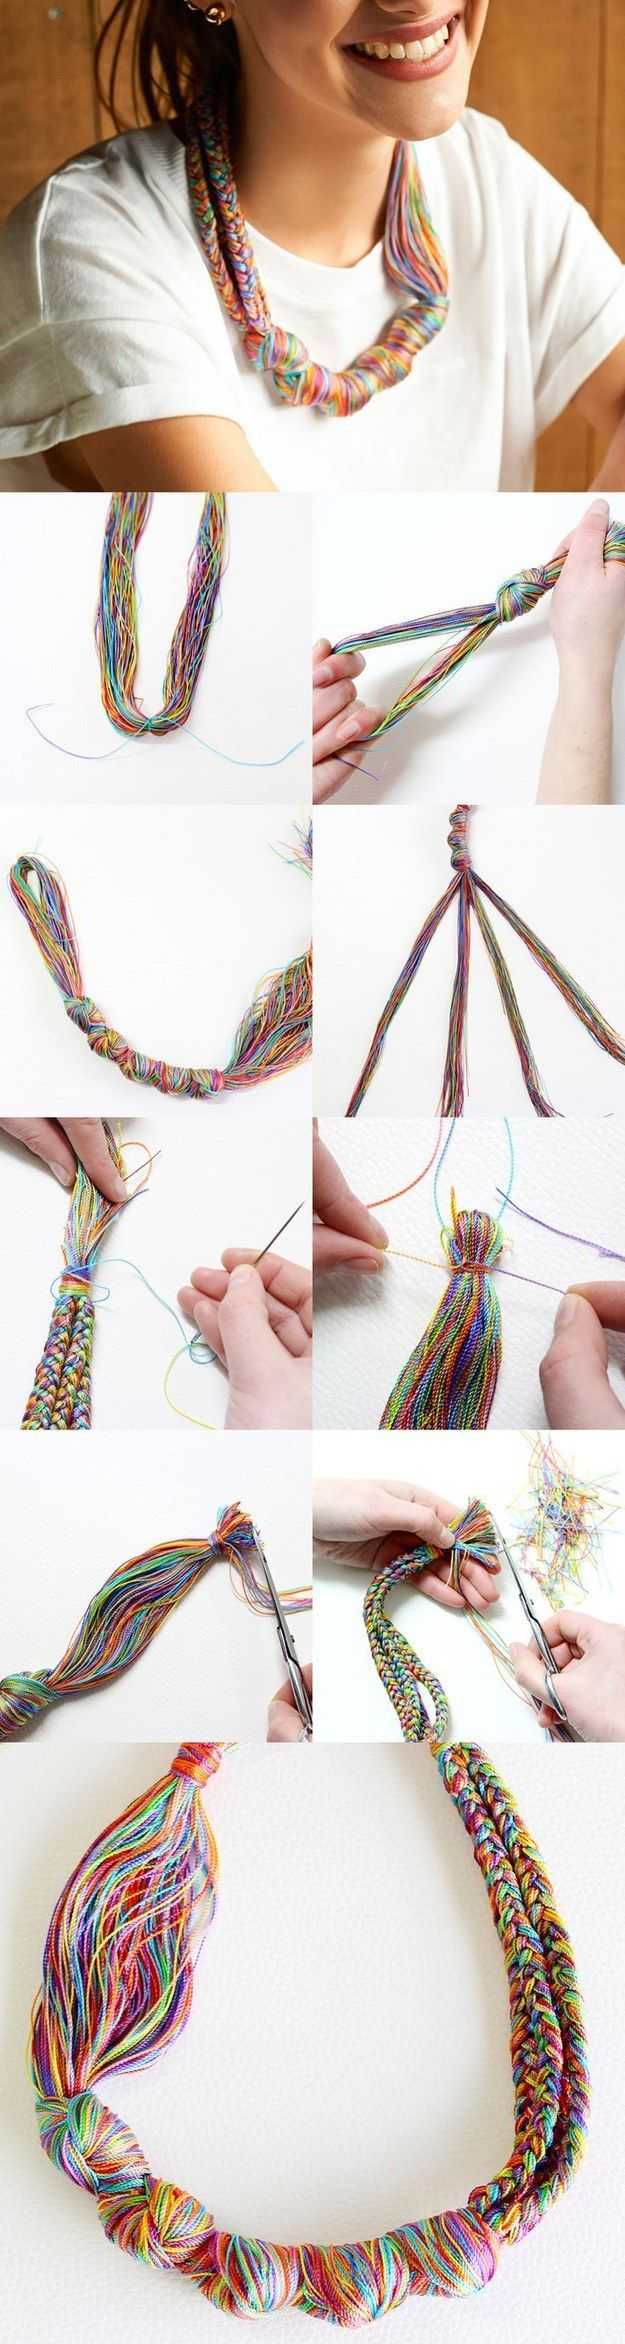 Embroidery Thread Necklace | 31 Cheap And Easy Last-Minute DIY Gifts They'll Actually Want